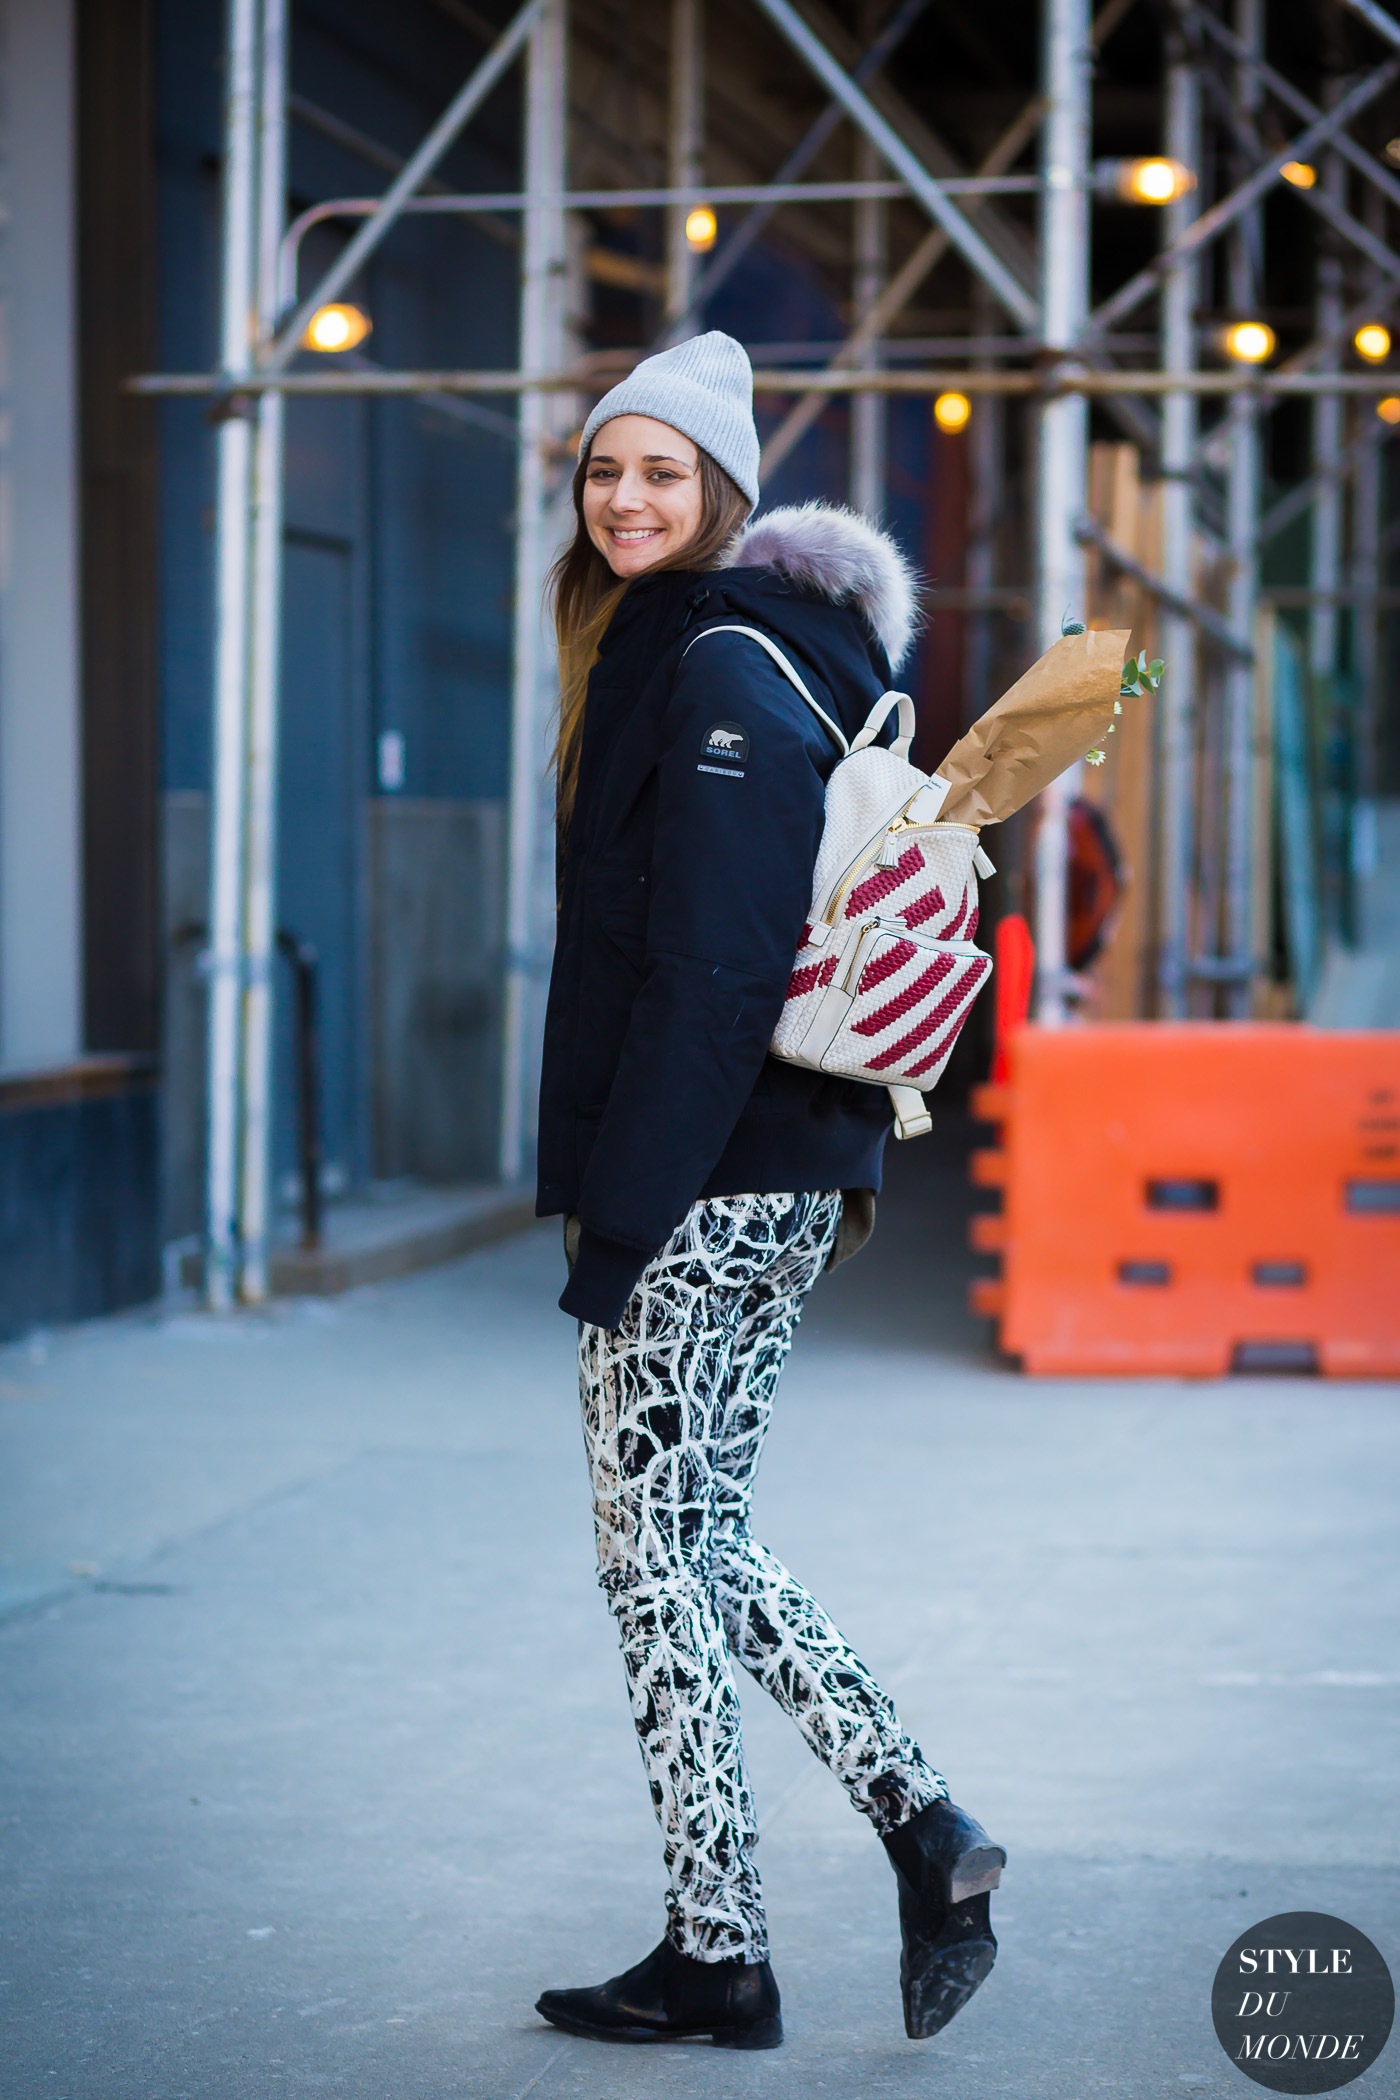 Brie Welch Street Style Street Fashion Streetsnaps by STYLEDUMONDE Street Style Fashion Photography